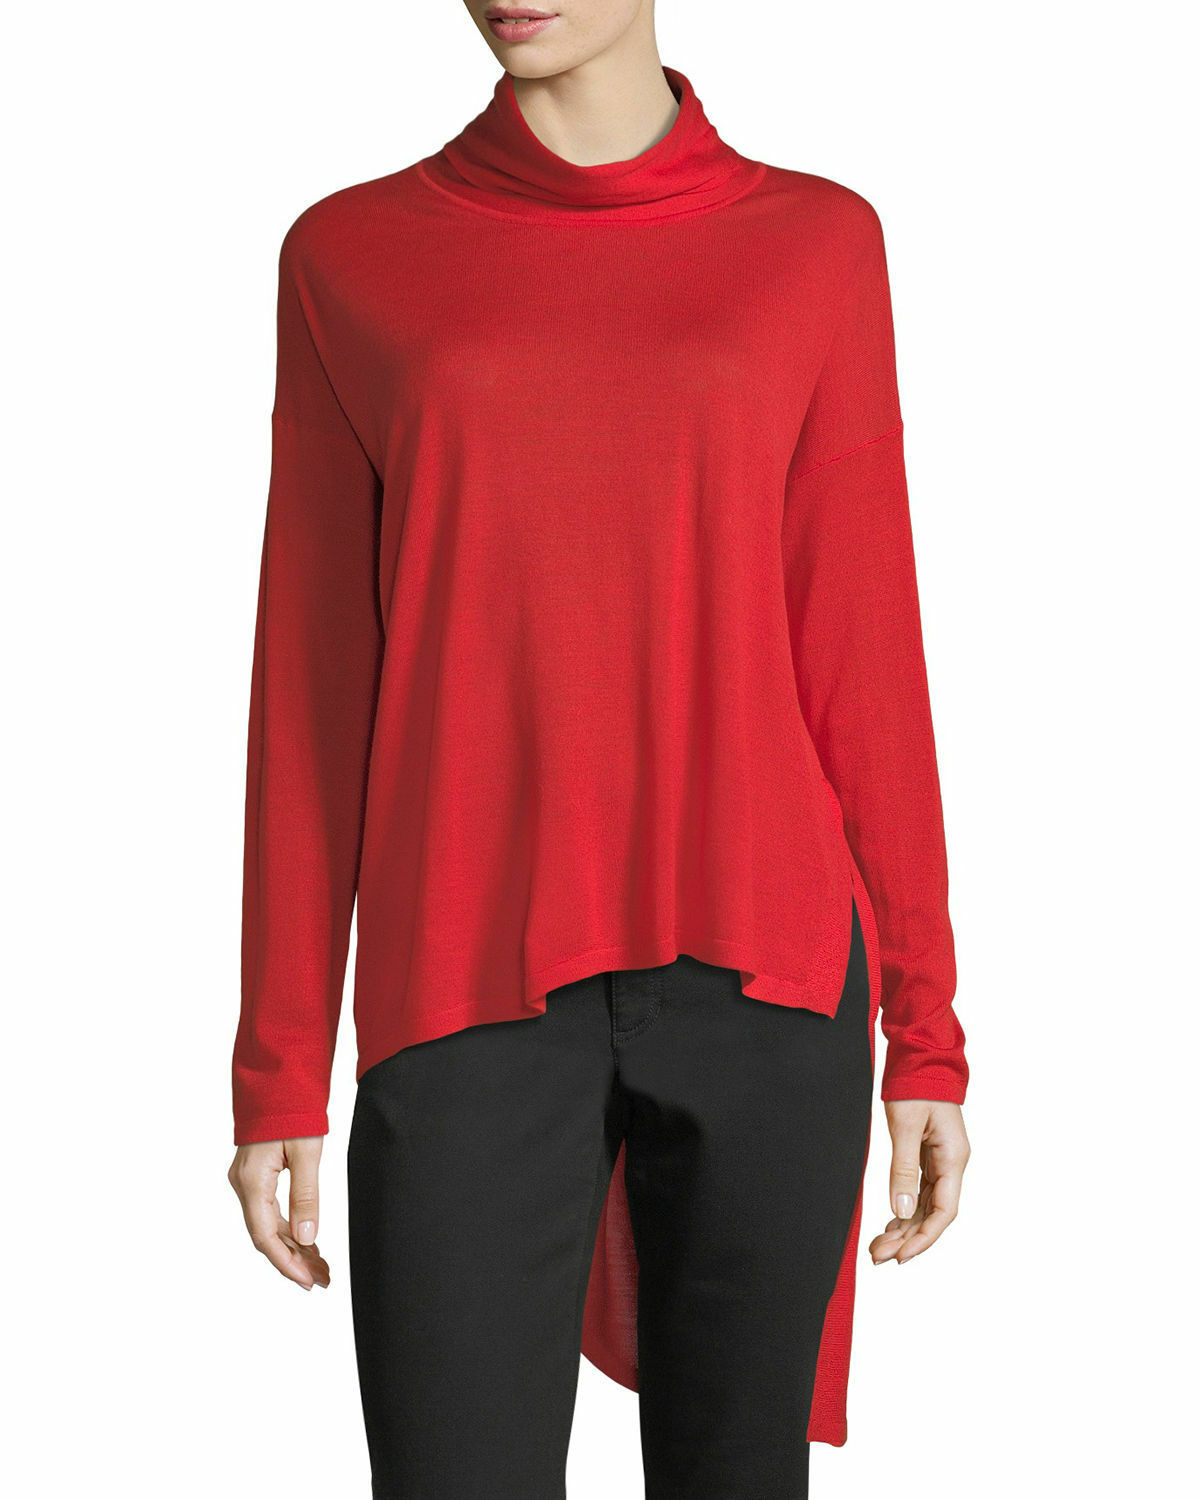 NWT Eileen Fisher High-Low Ultrafine Merino Wool Top in Red - Size S